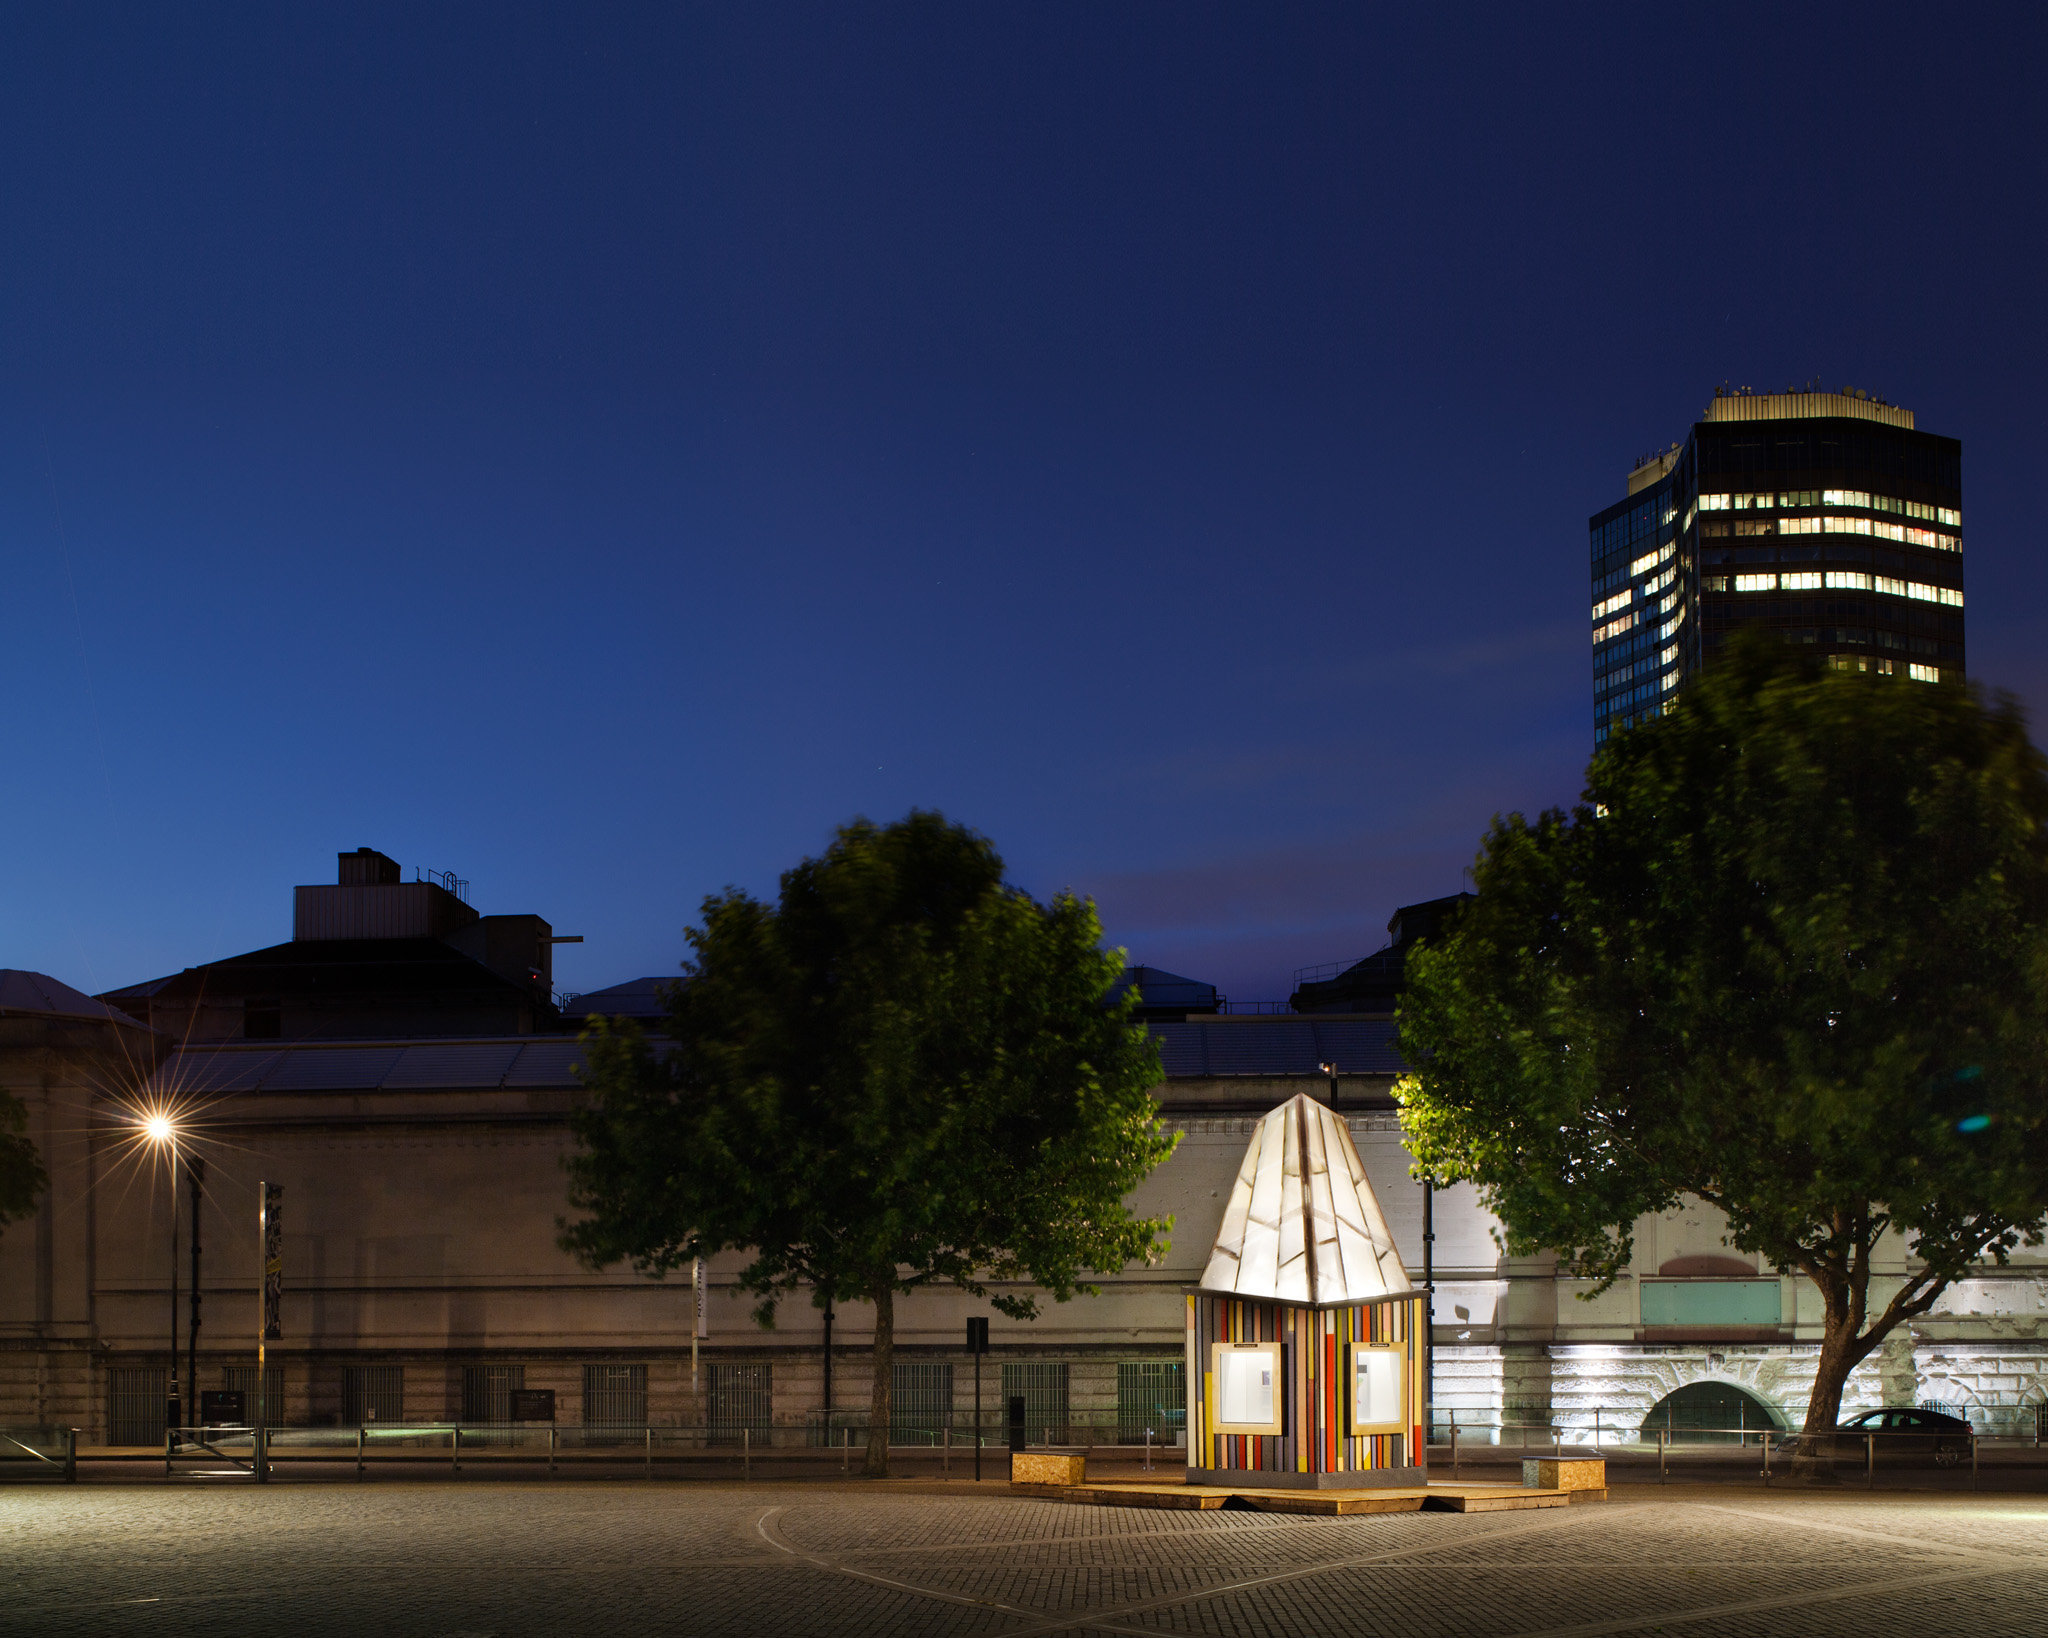 4m2 Gallery Pavilion, London. Quay2c Architects